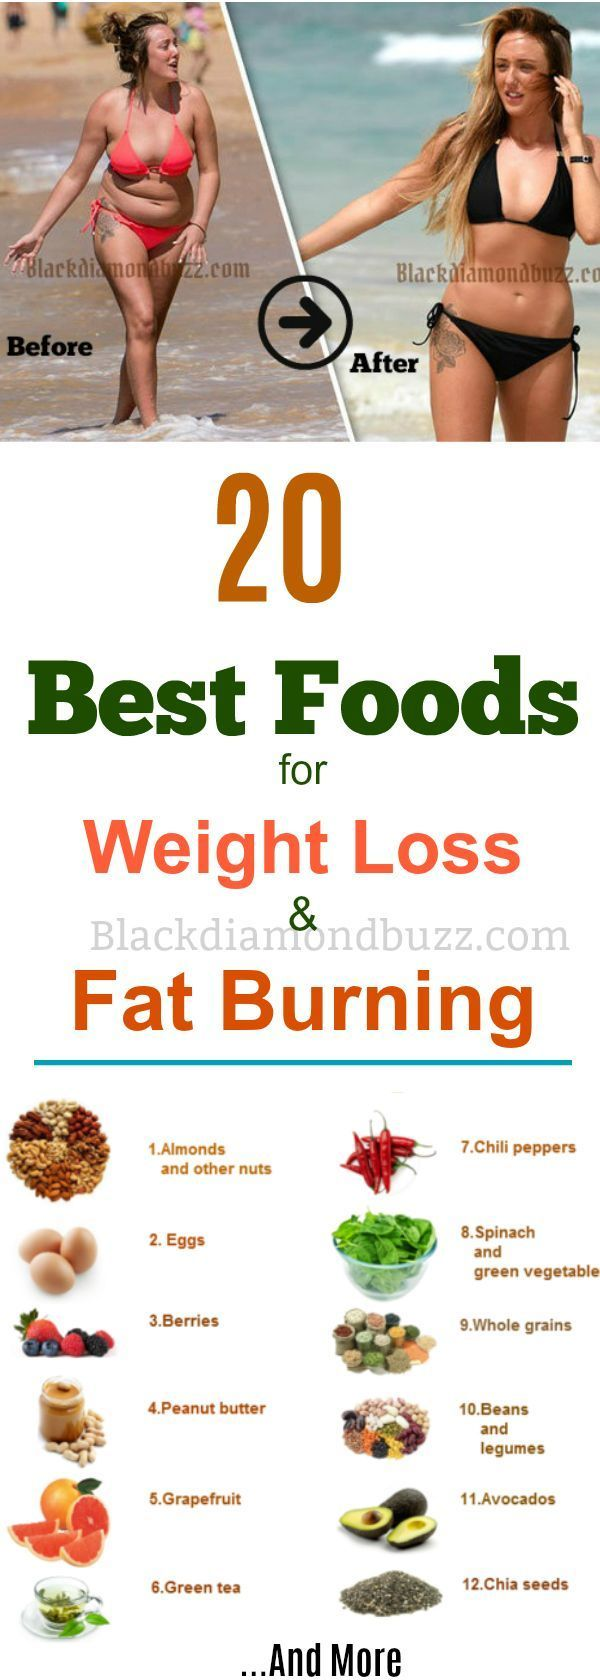 4 Amazing Metabolism-Boosting Foods for Weight Loss